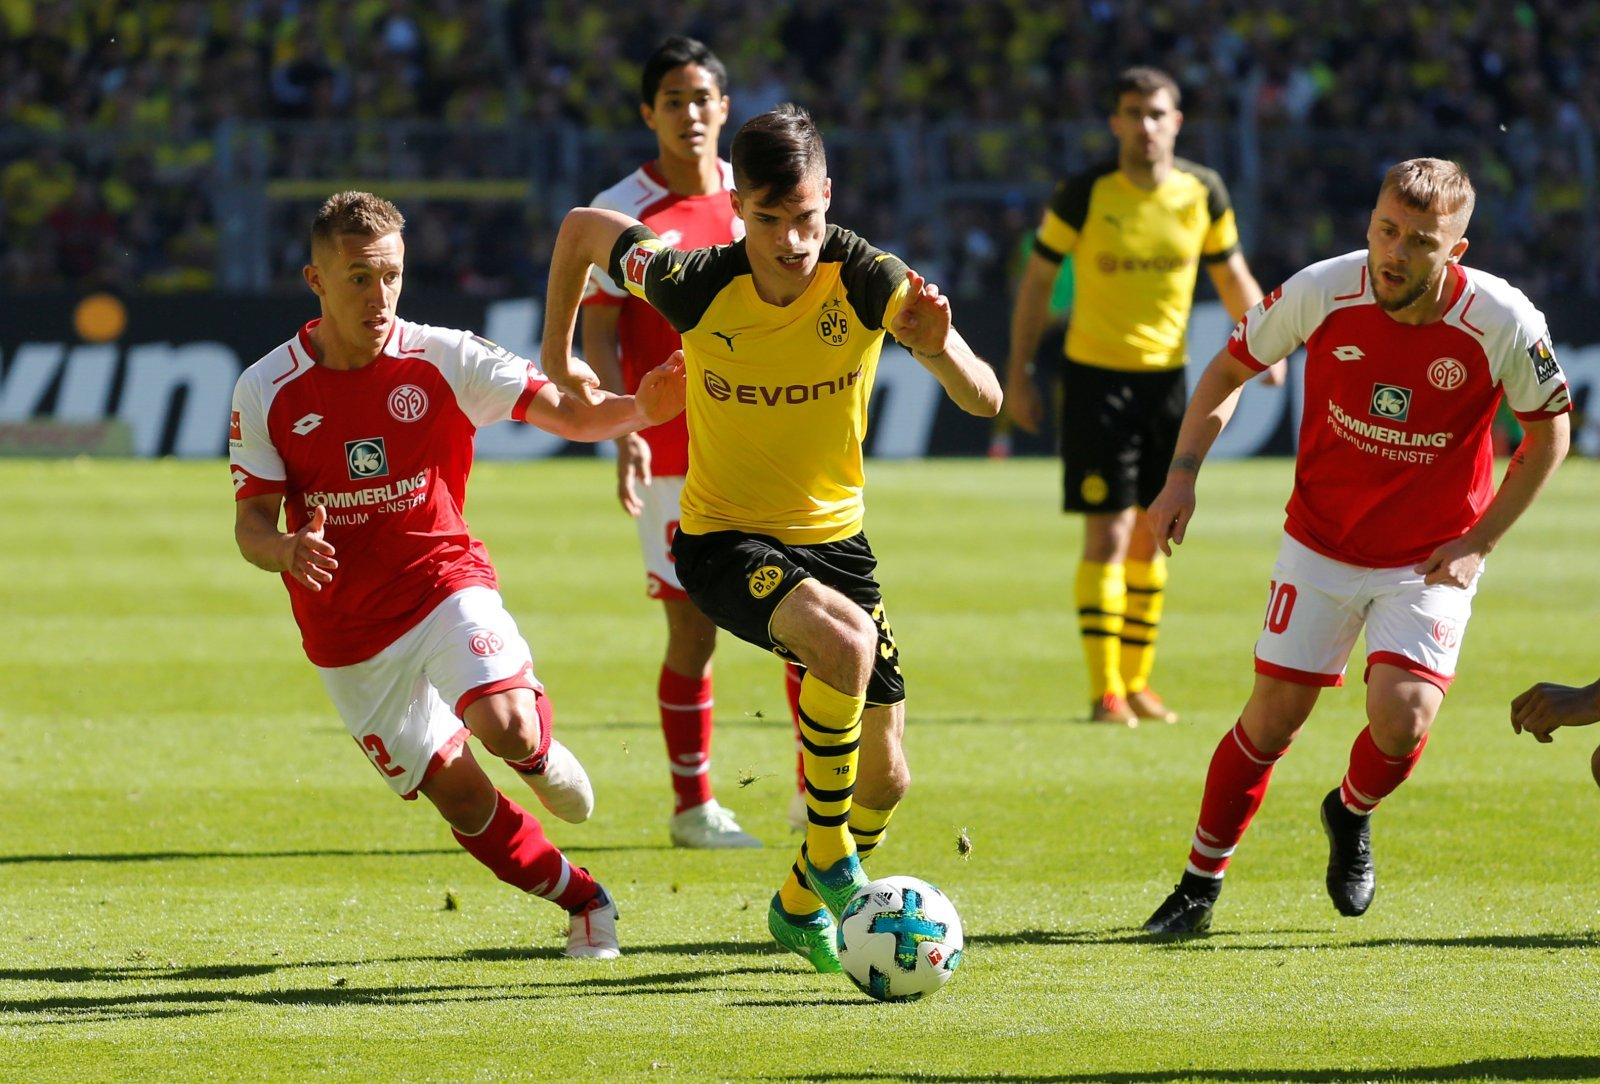 Arsenal: Julian Weigl is the ideal midfielder for Unai Emery's system